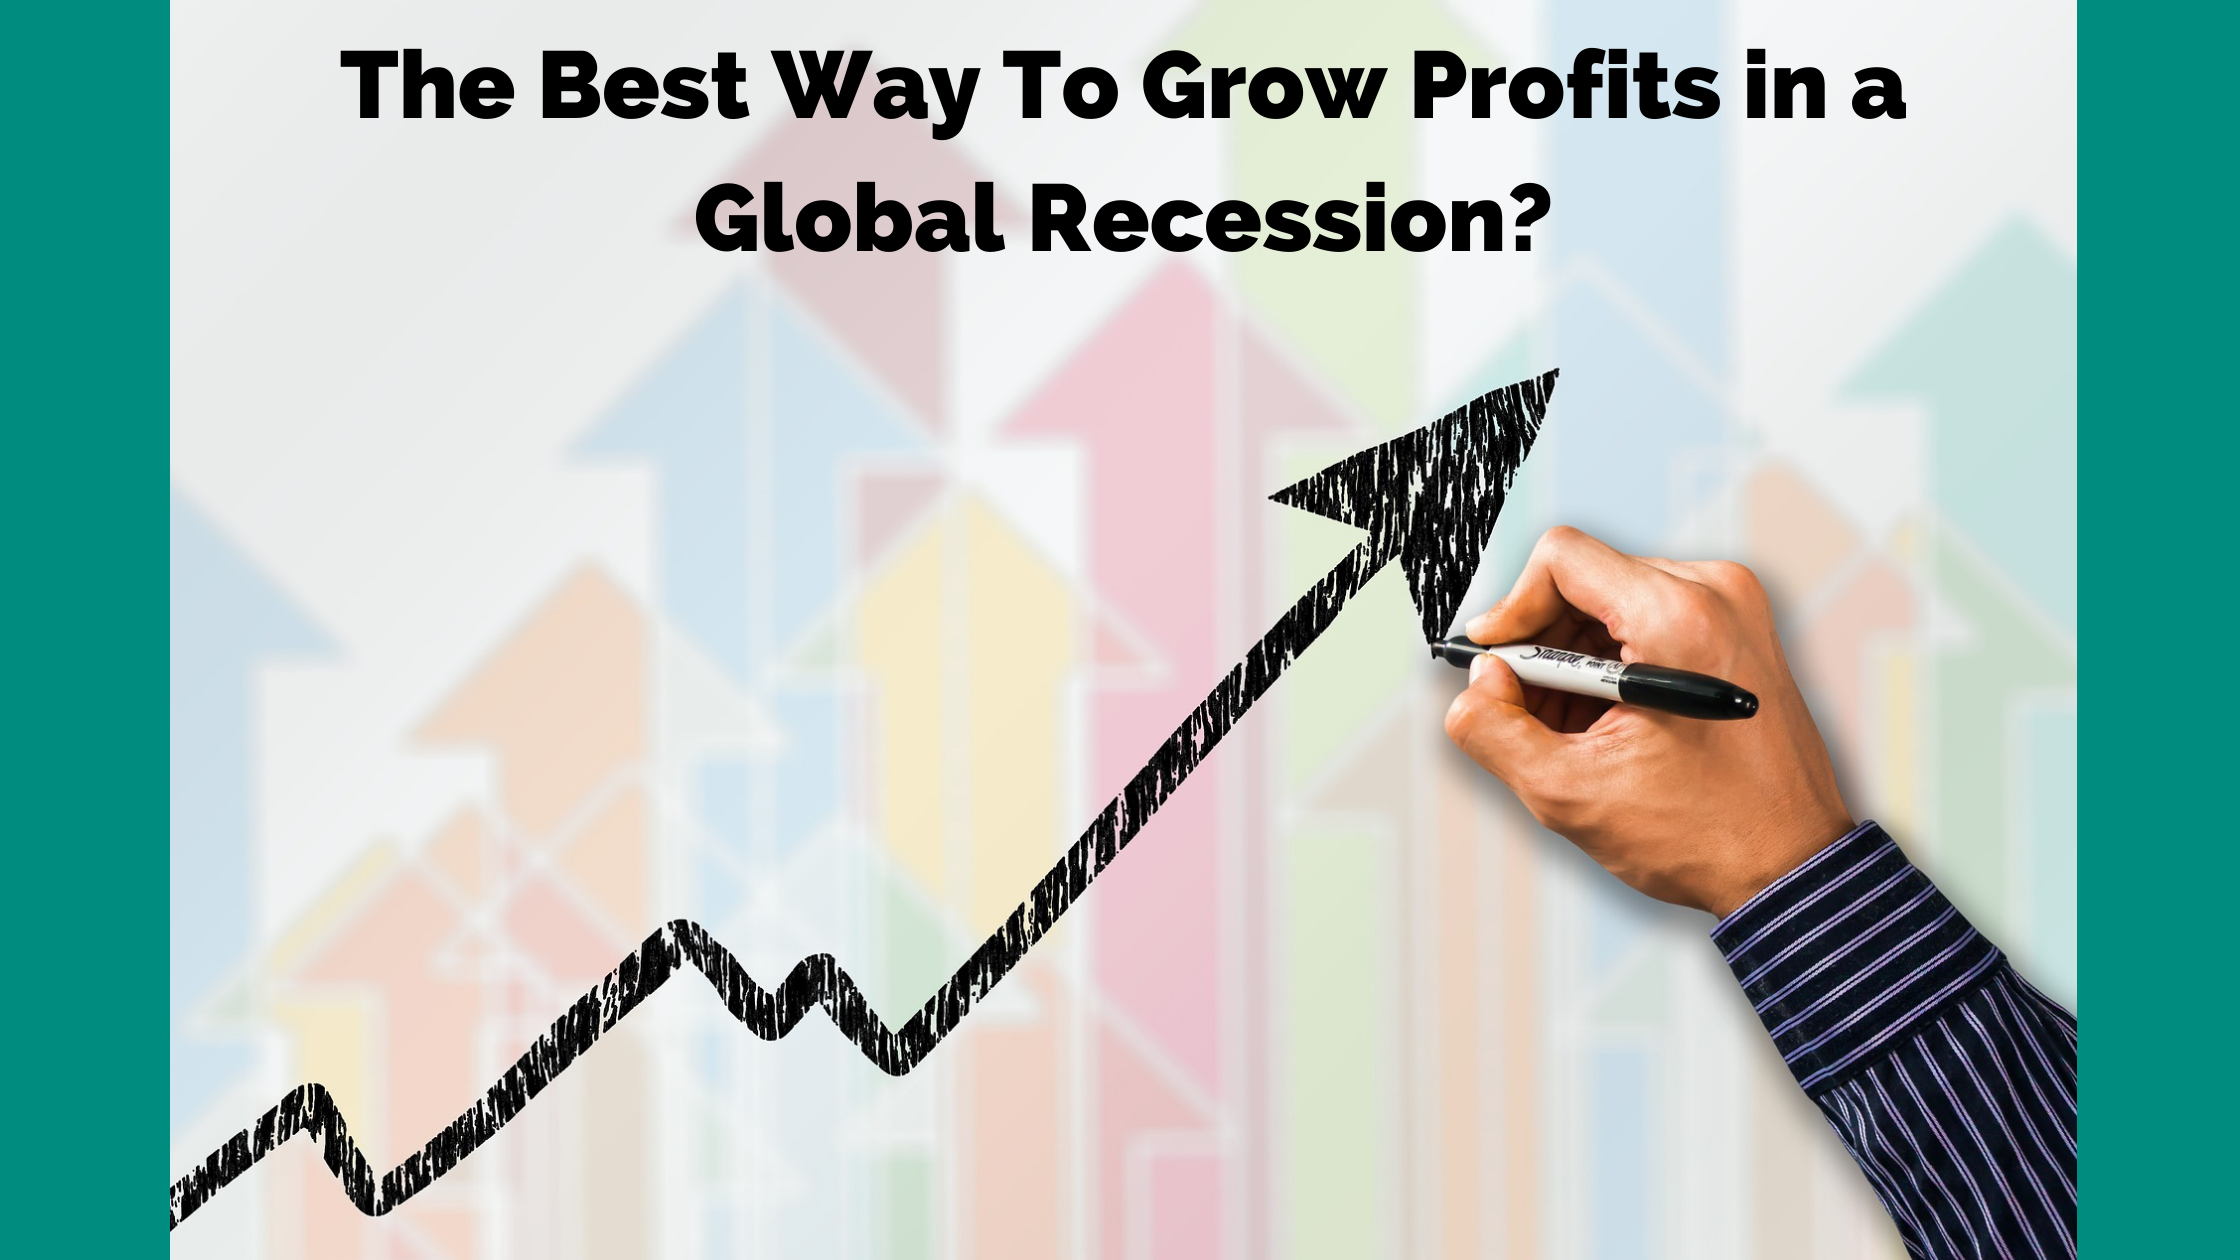 The Best Way To Grow Profits in a Global Recession?